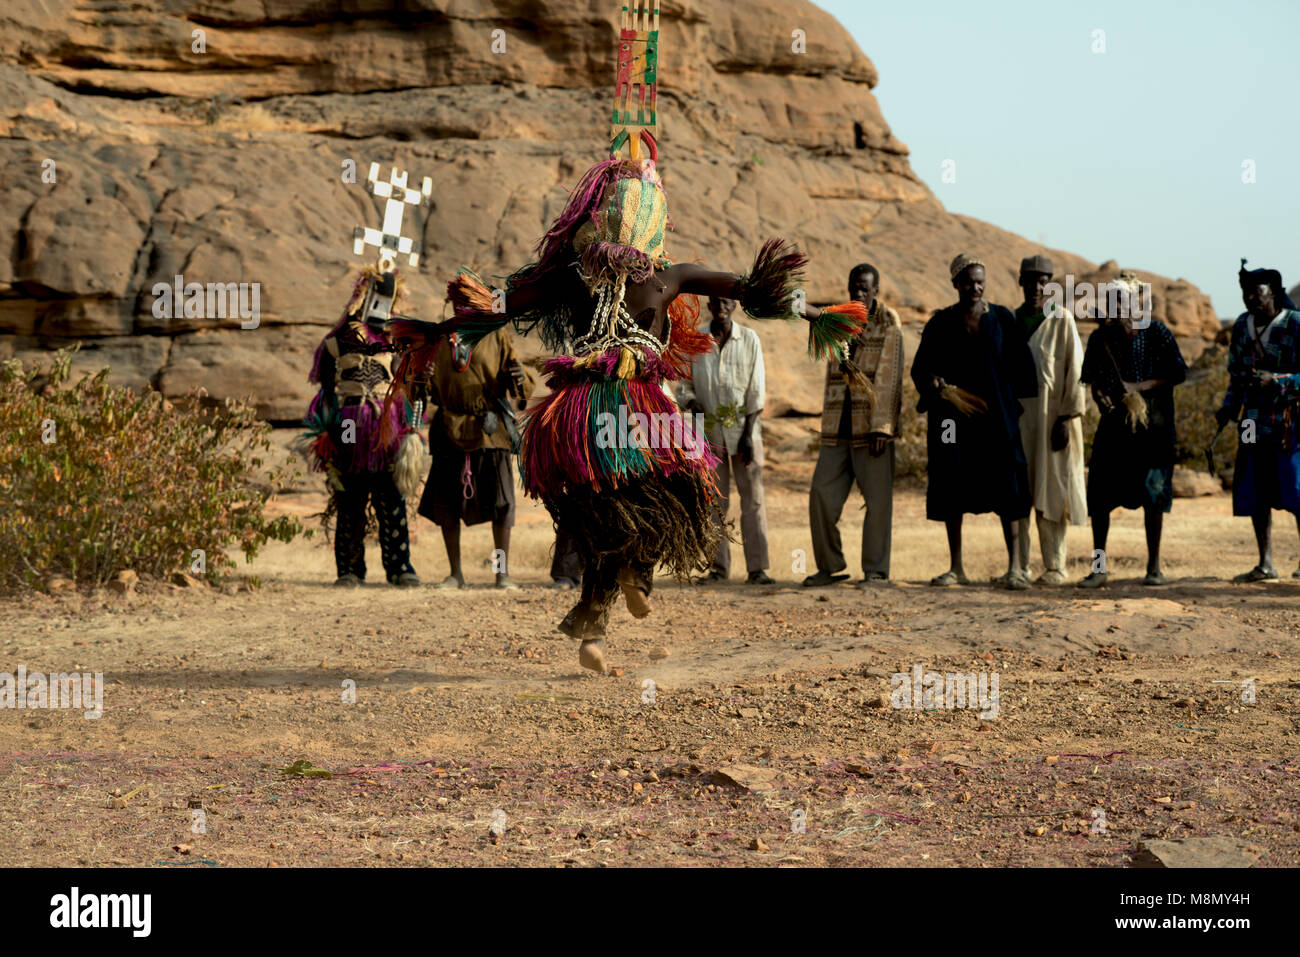 A group of Dogon masked dancers watch a man wearing a towering headdress perform his part in a traditional dance. - Stock Image